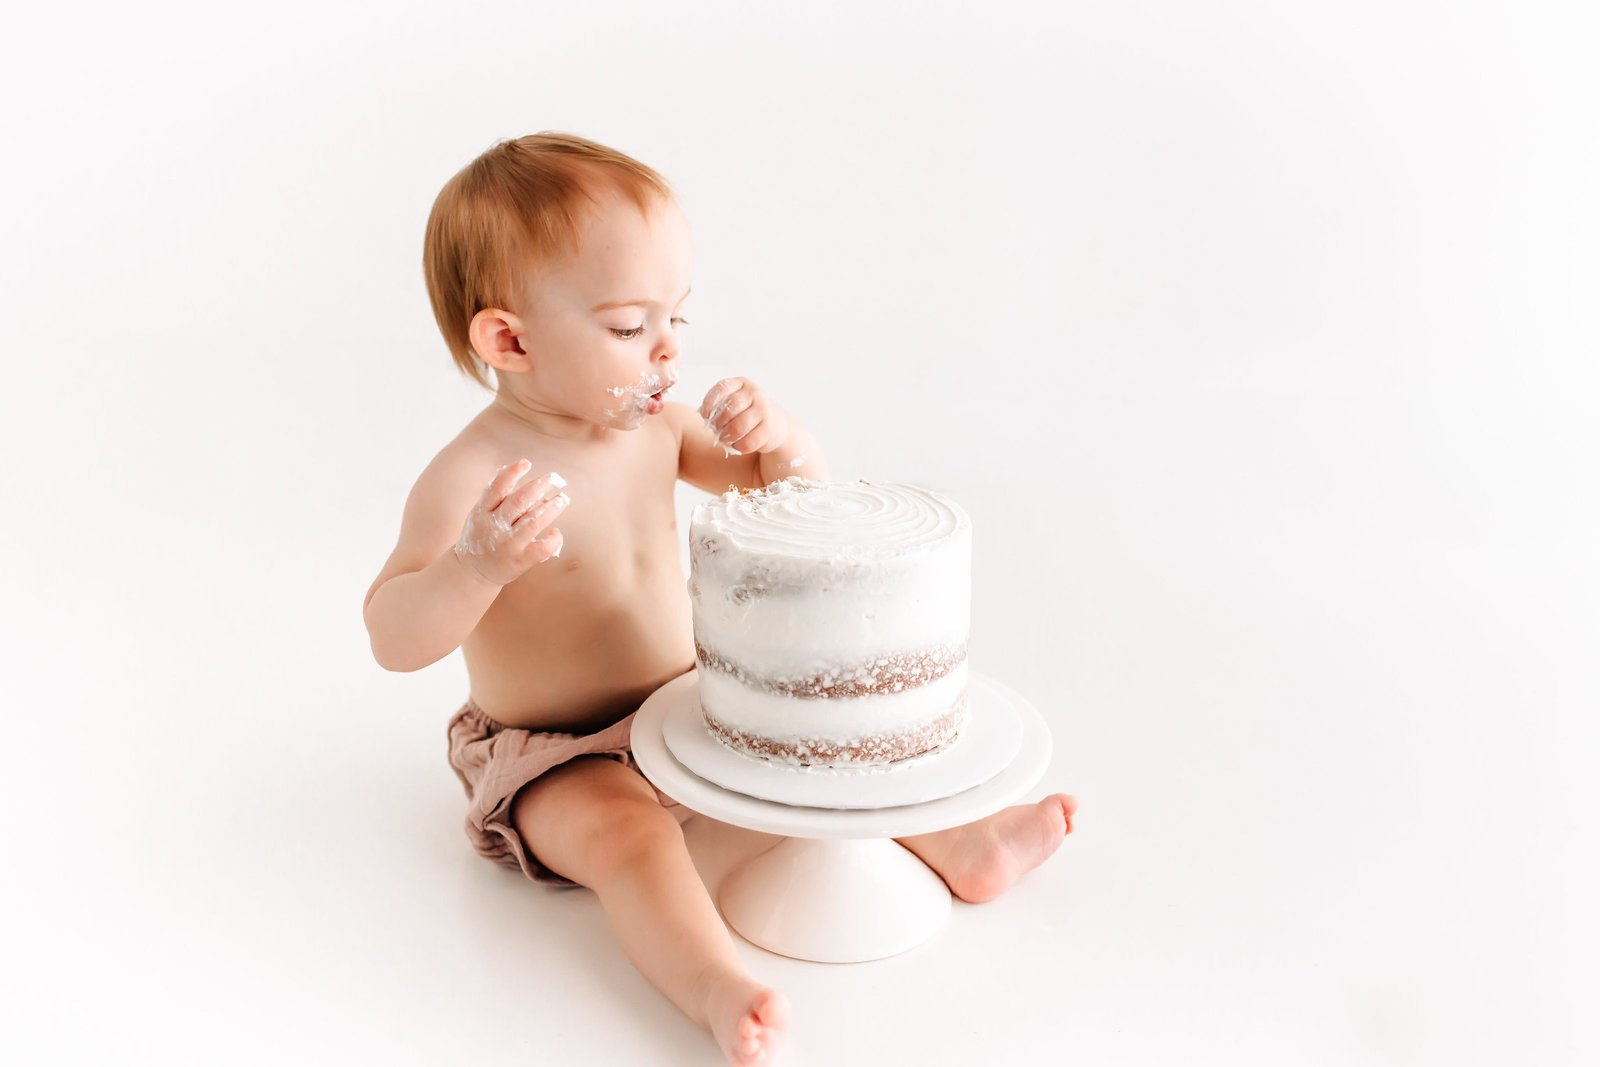 St_Louis_Baby_Photographer_Kelly_Laramore_Photography_89